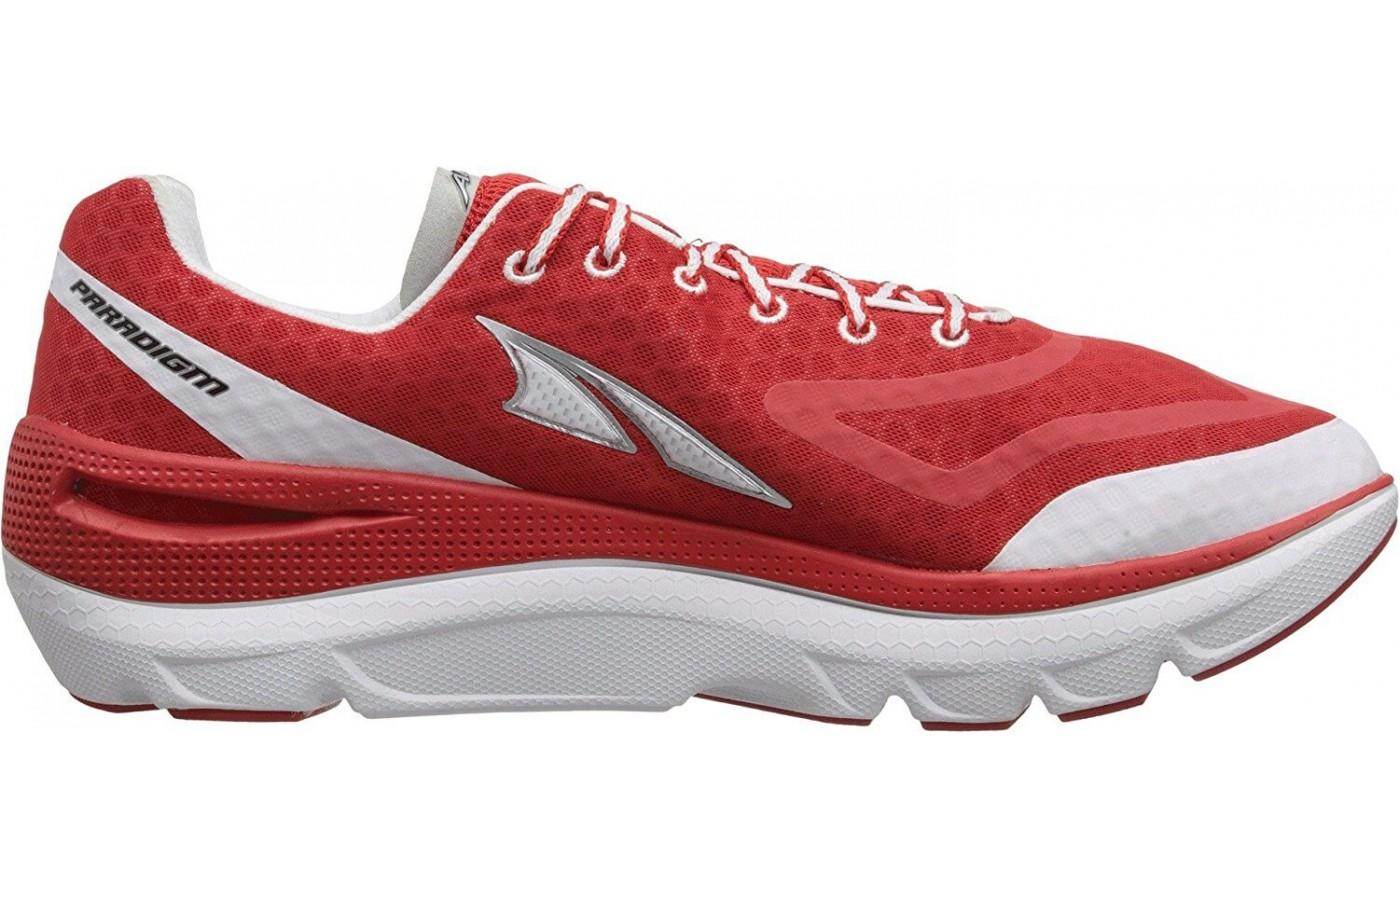 the right side of the Altra Paradigm